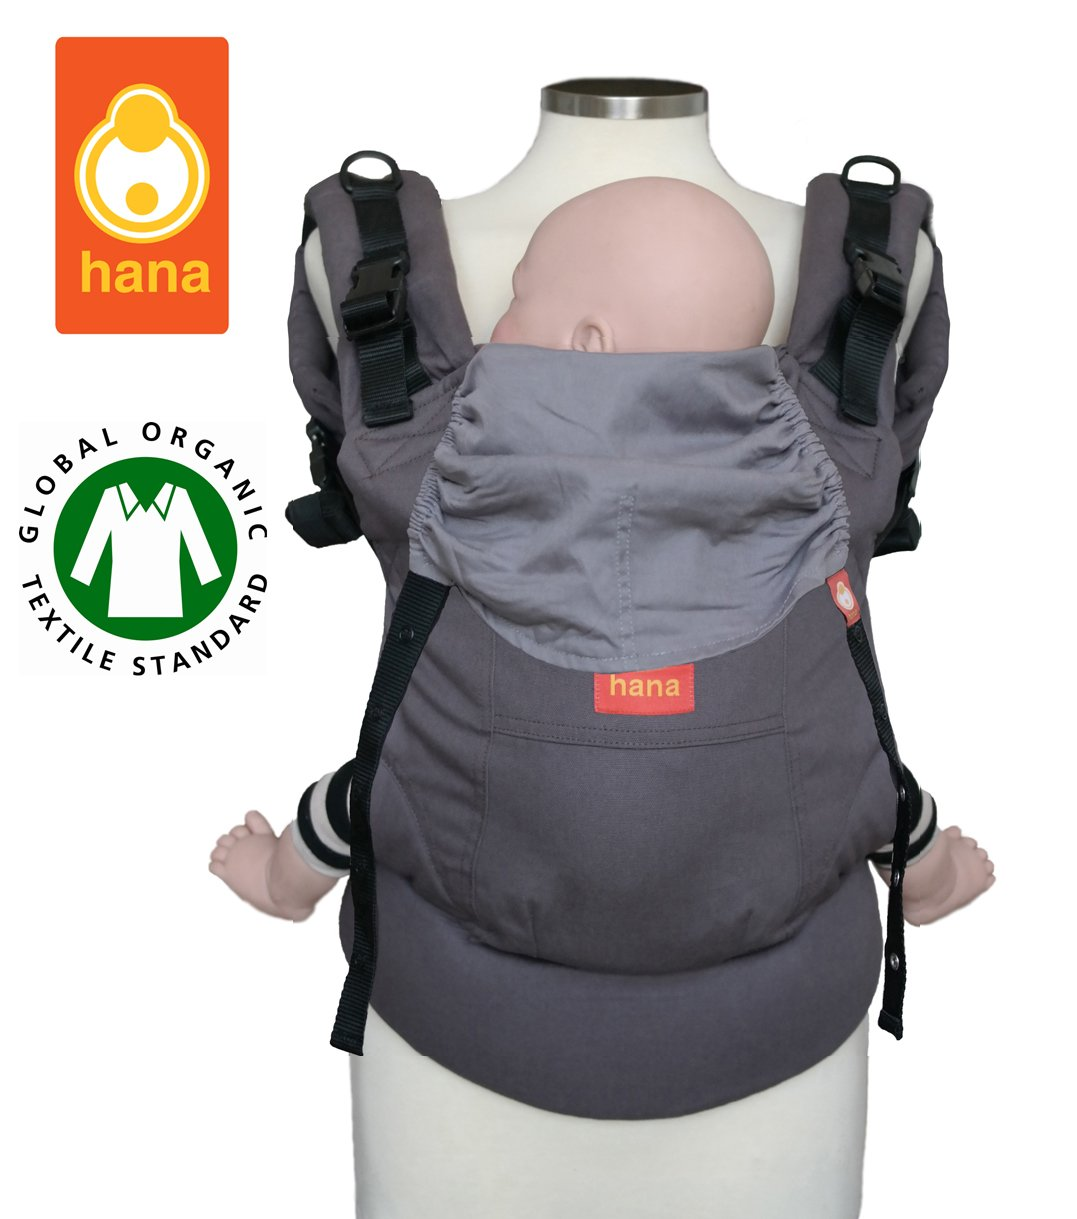 organic cotton front and back carrier 3.5-20 kgs Hana baby carrier Grey-yellow